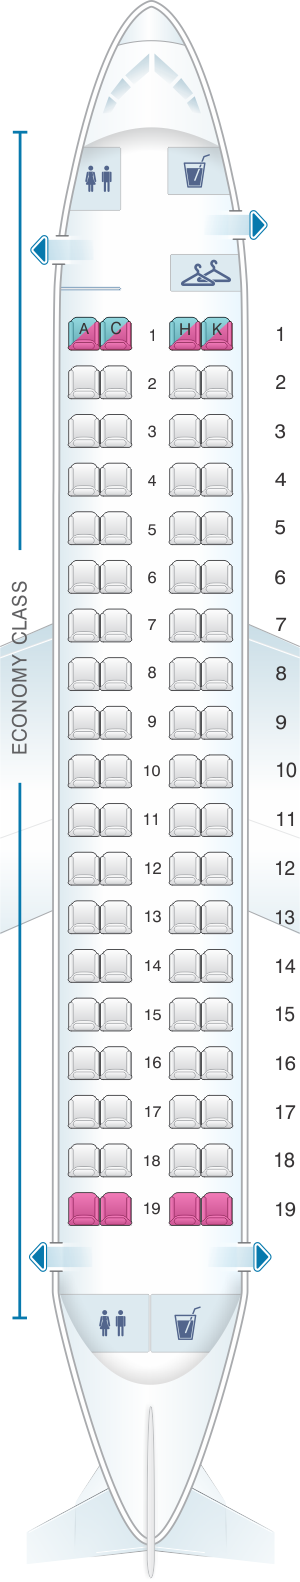 Seat map for Japan Airlines (JAL) Embraer 170 M01